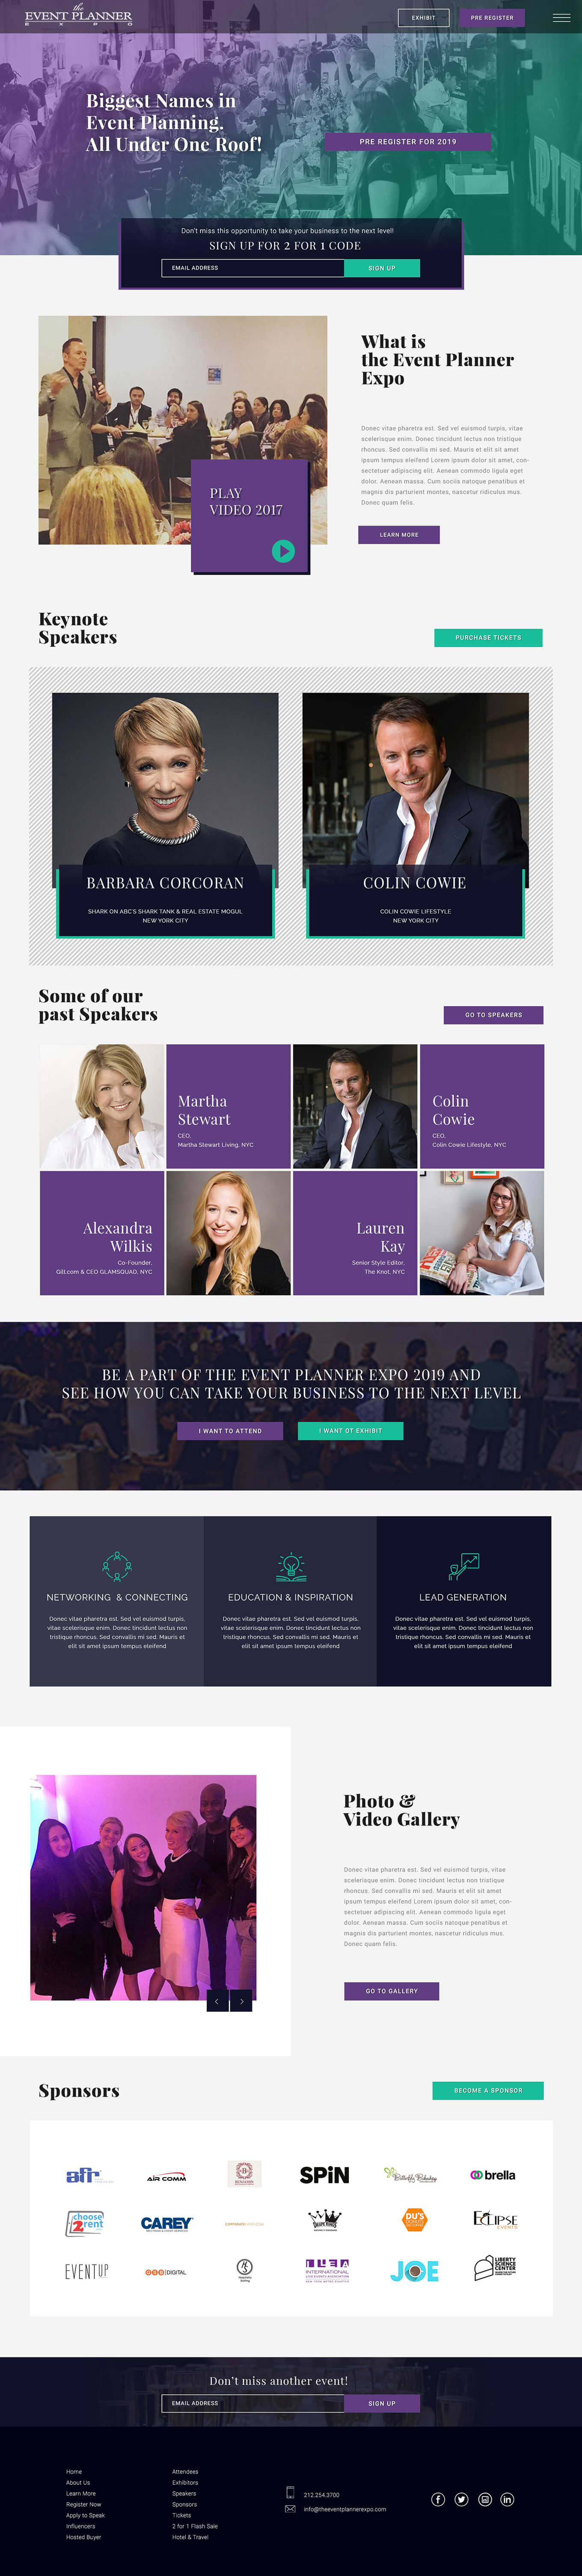 Event landing page design - full page view